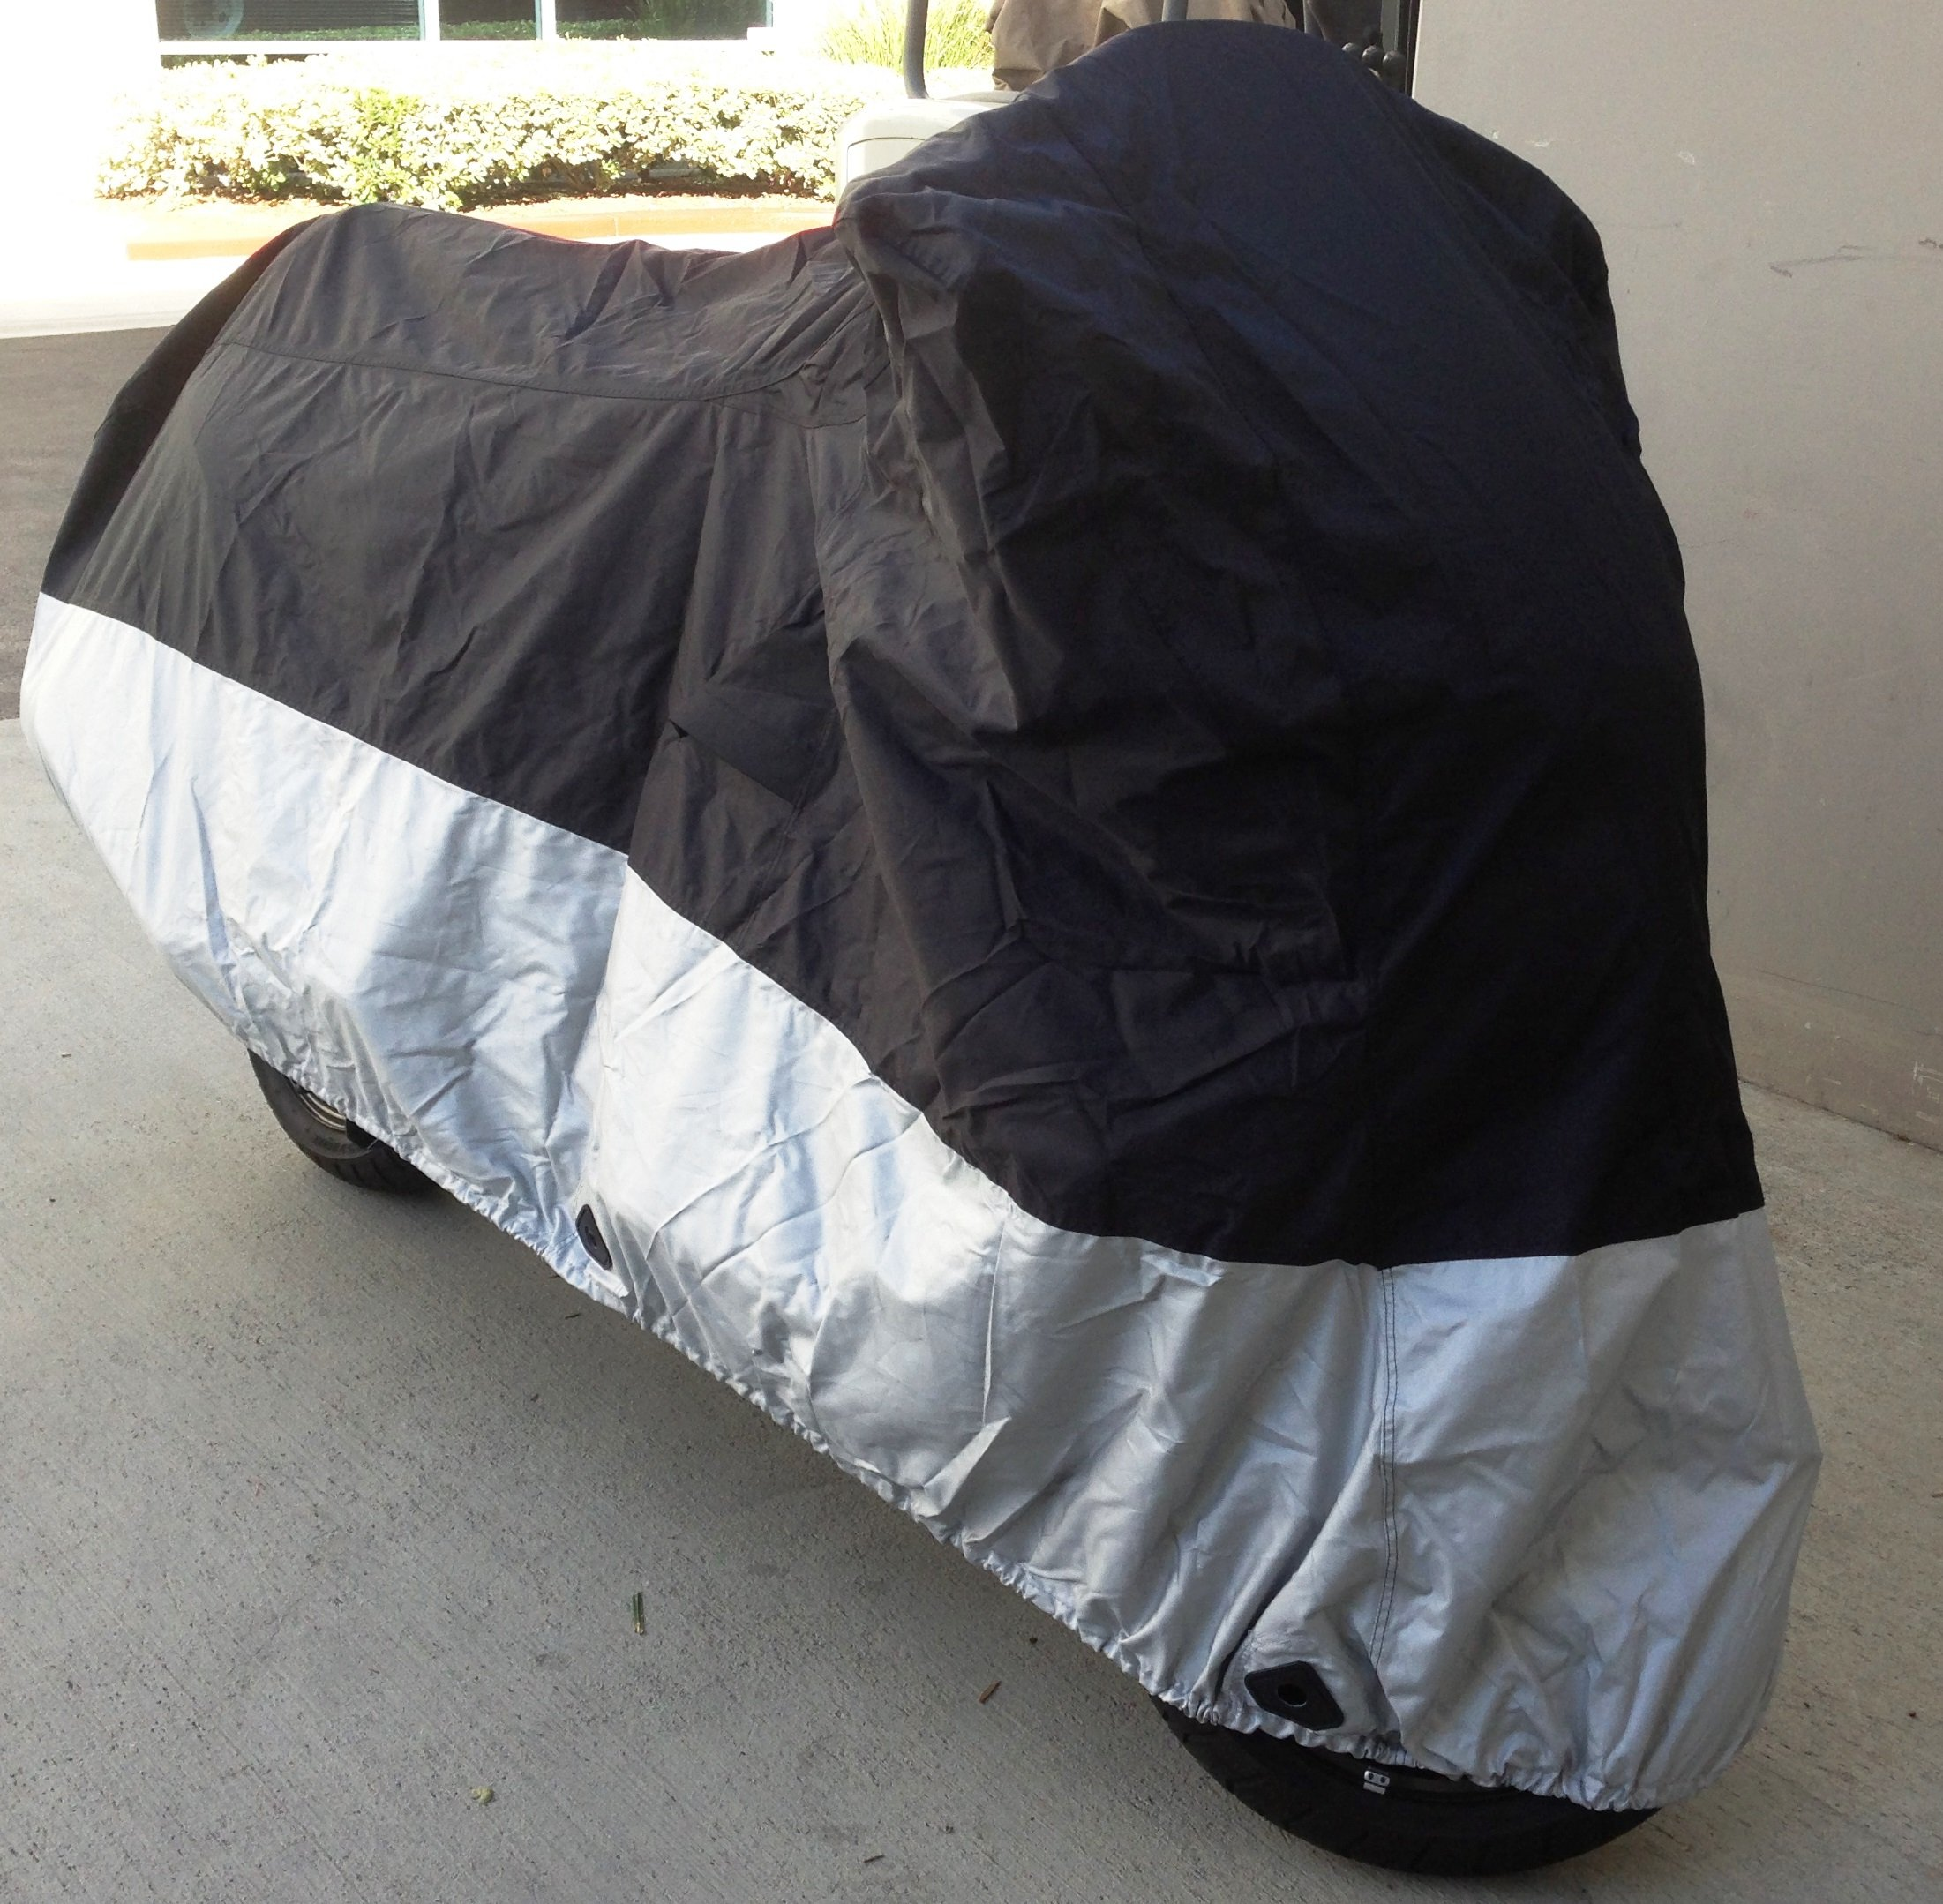 High Quality Heavy Duty Motorcycle cover (L) with cable & lock. Fits up to 84'' length sport bike, dirt bike, small cruiser.